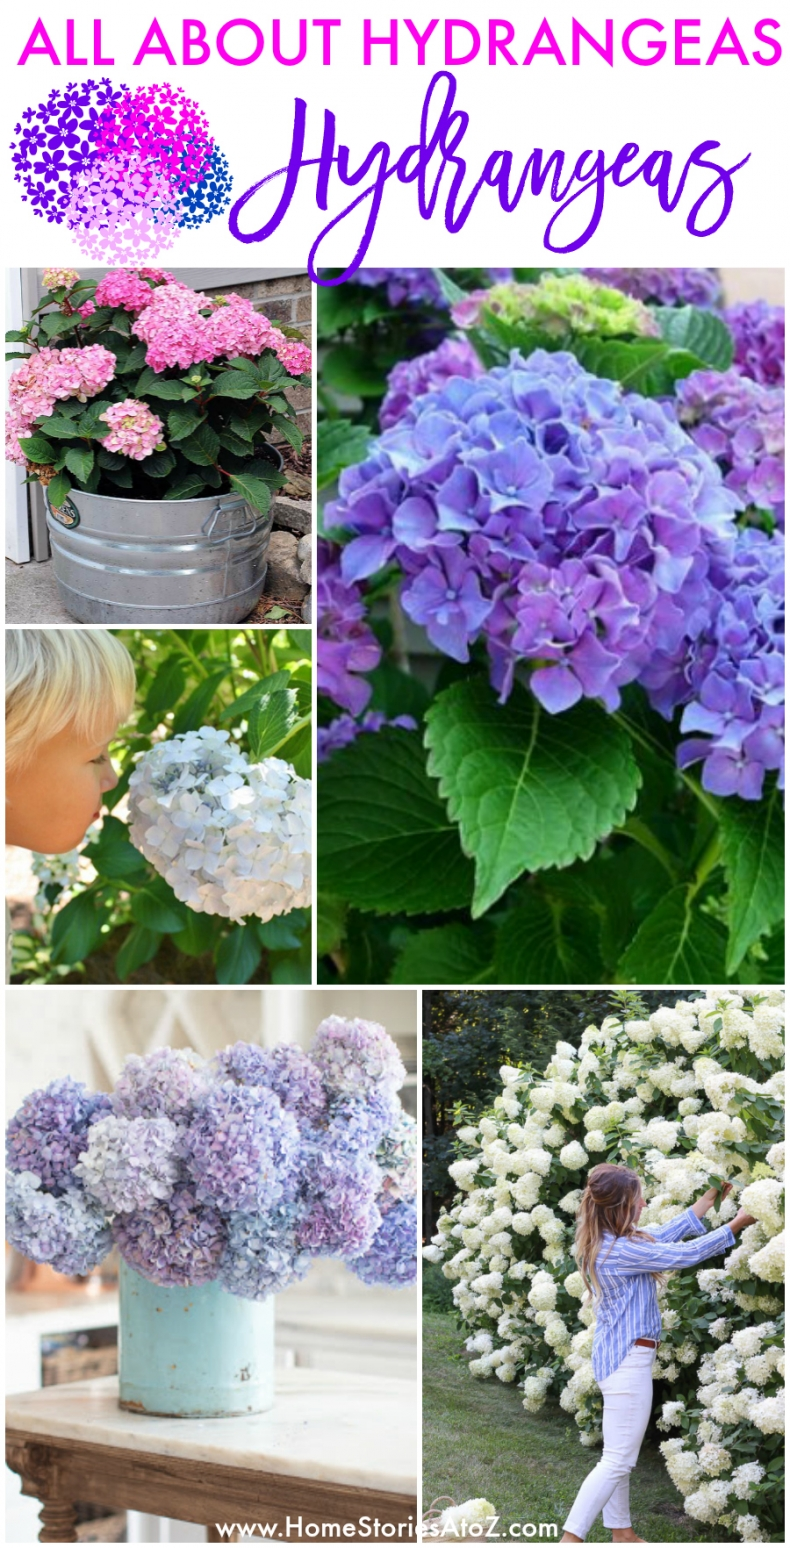 All About Hydrangeas - How to Plant, Care, and Maintain your Hydrangeas by Home Stories A to Z